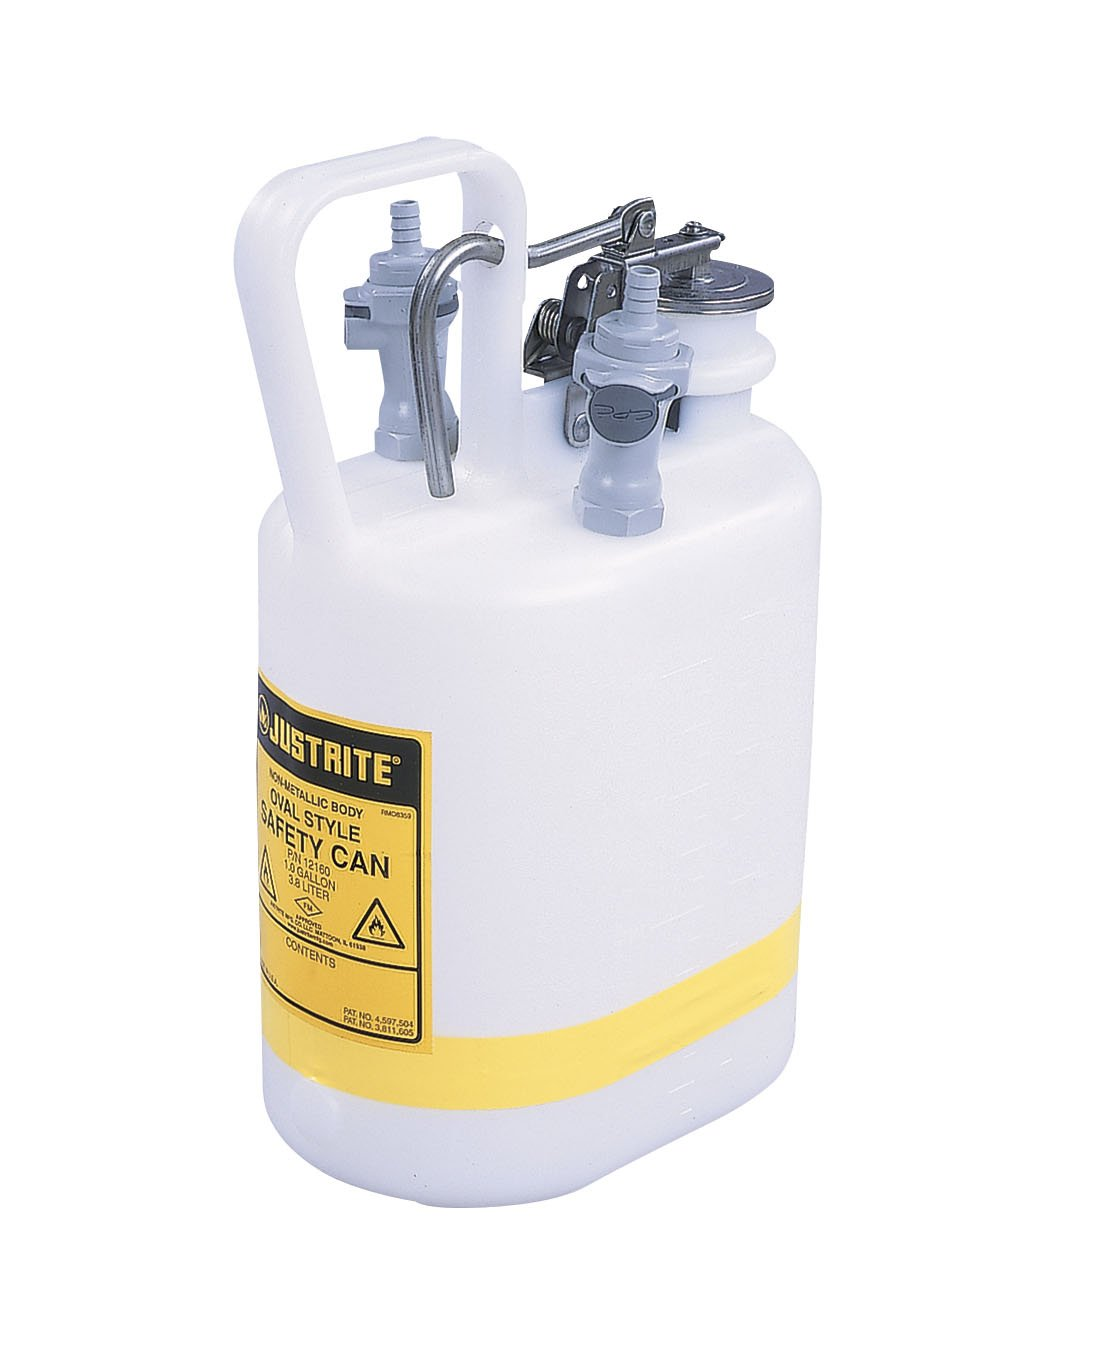 Justrite 12160 1 Gallon, 3/8'' Tubing, 5 1/4'' x 12 3/4'' Size NM HPLC Prefabricated Quick-Disconnect Oval Safety Disposal Cans With 2 Polypropylene Fittings